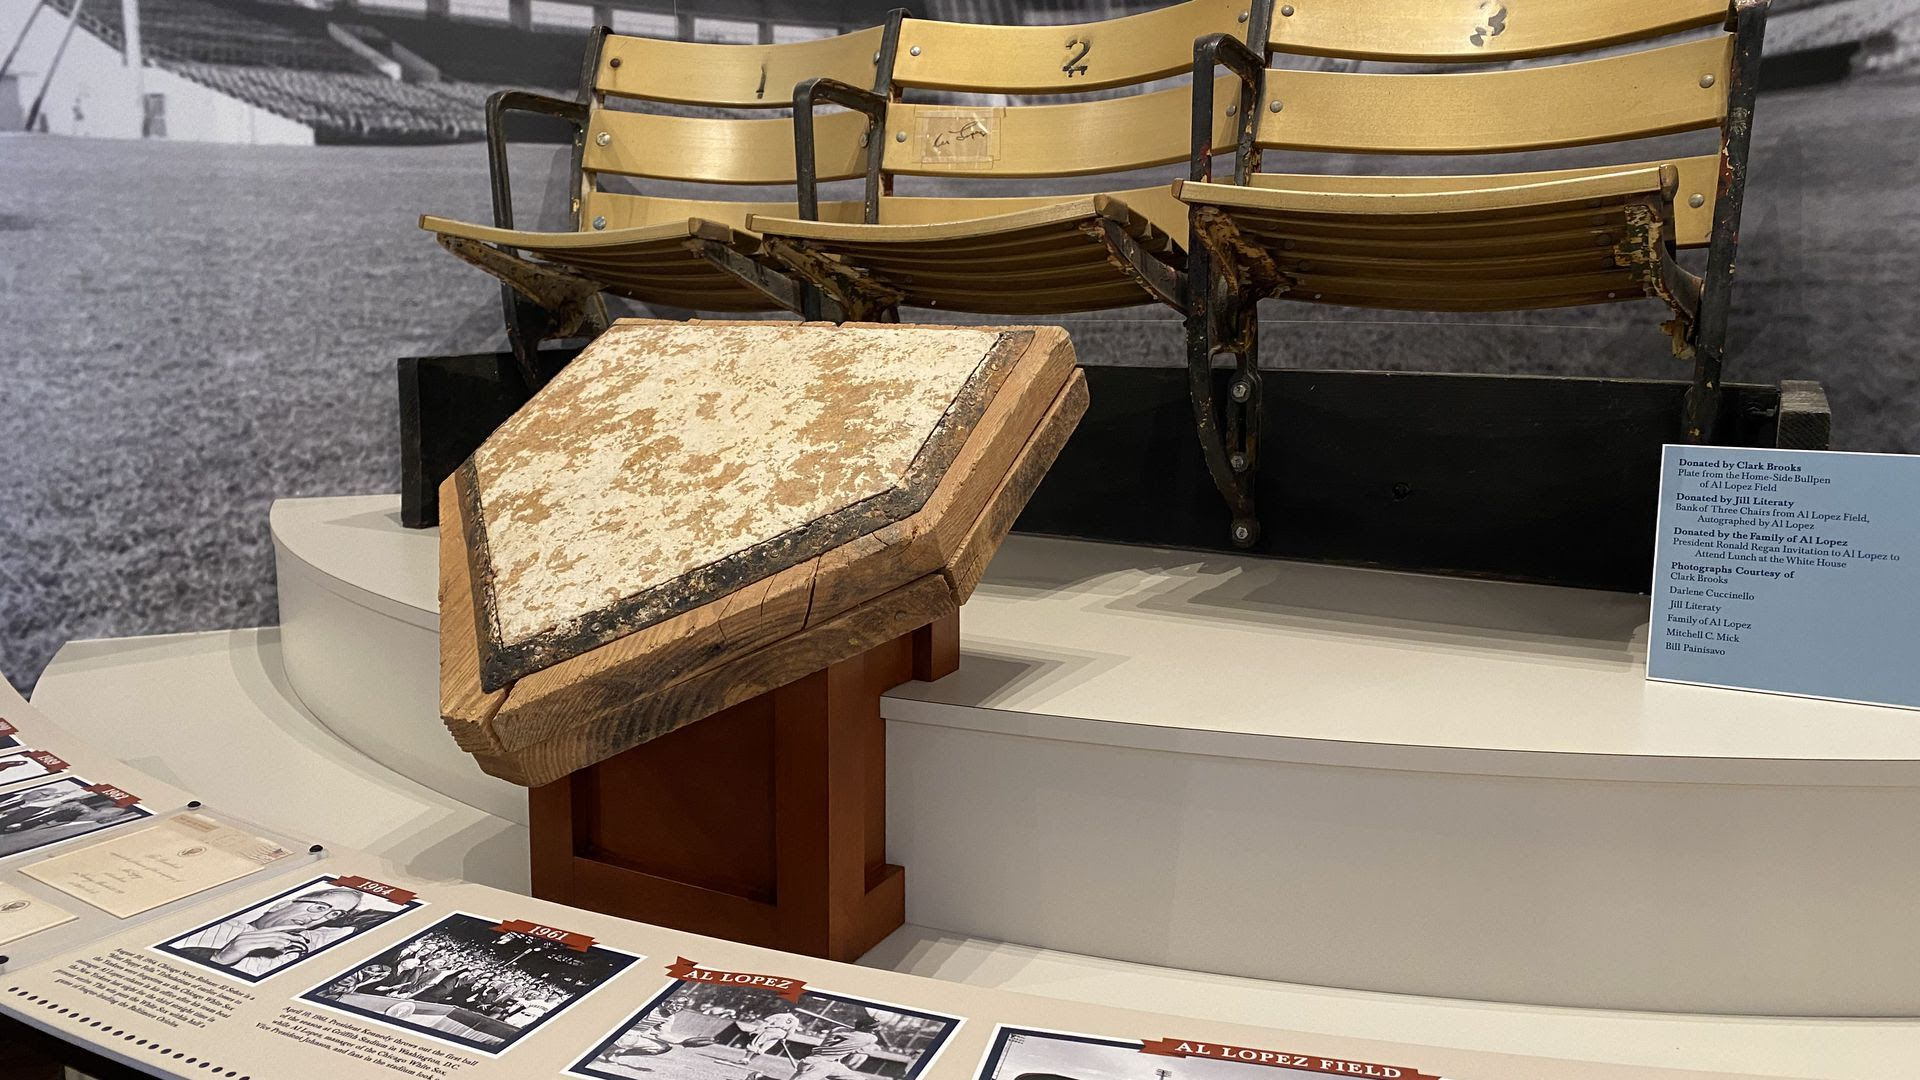 A weathered home plate and wooden baseball bleachers sit in a museum.